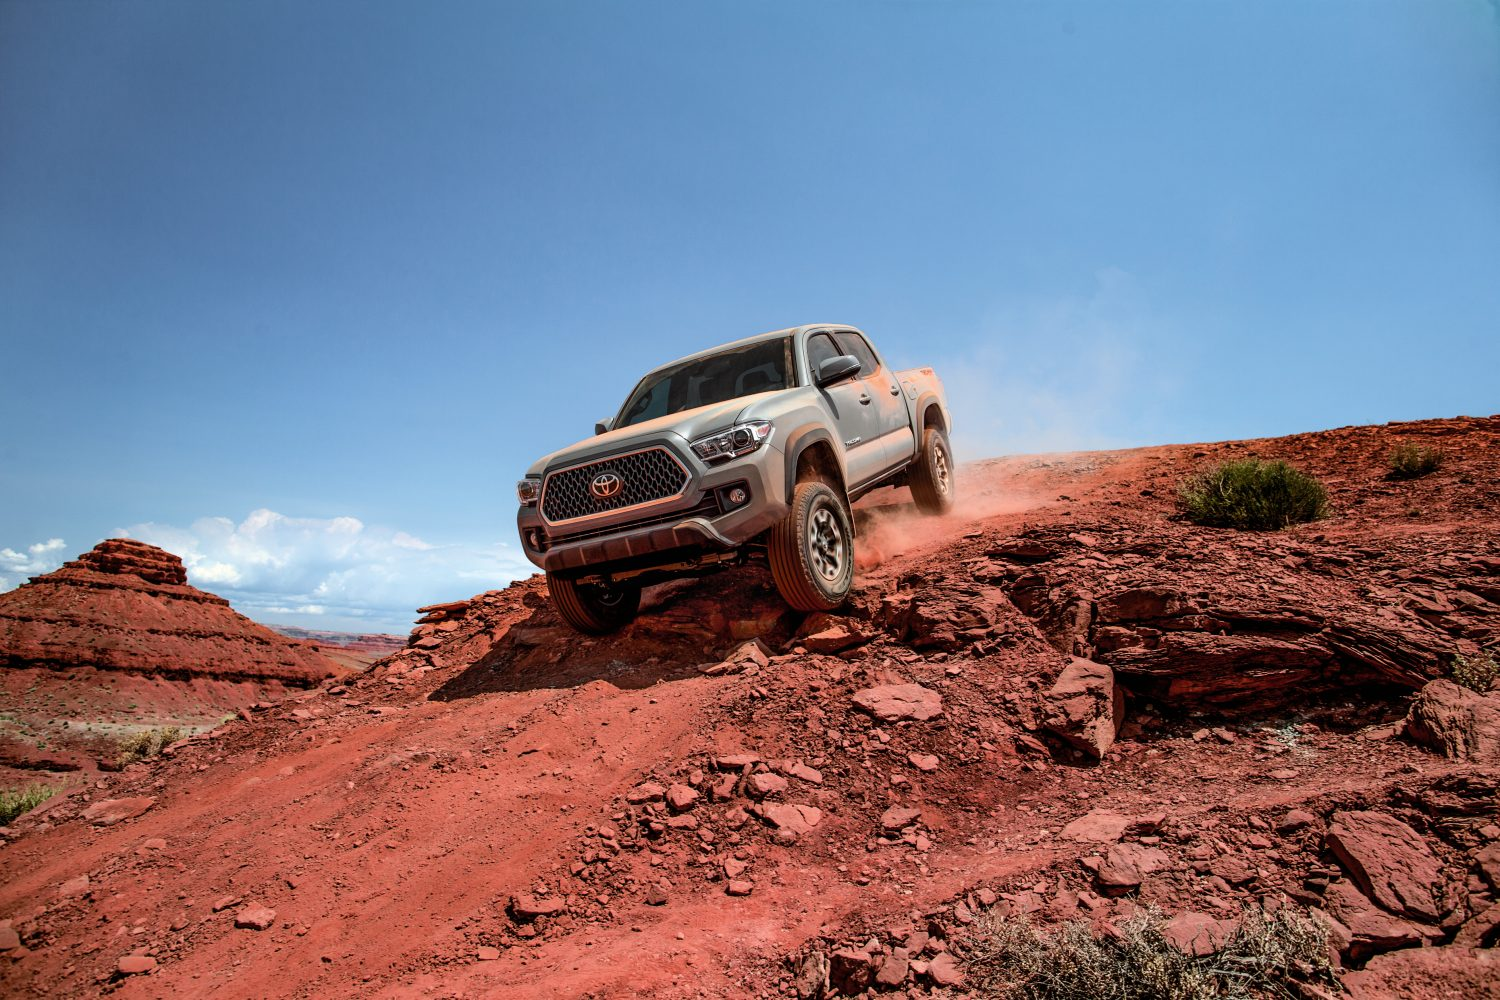 a gray 2018 model year Toyota Tacoma climbing down a sandy red incline on an off-road trail in the desert.